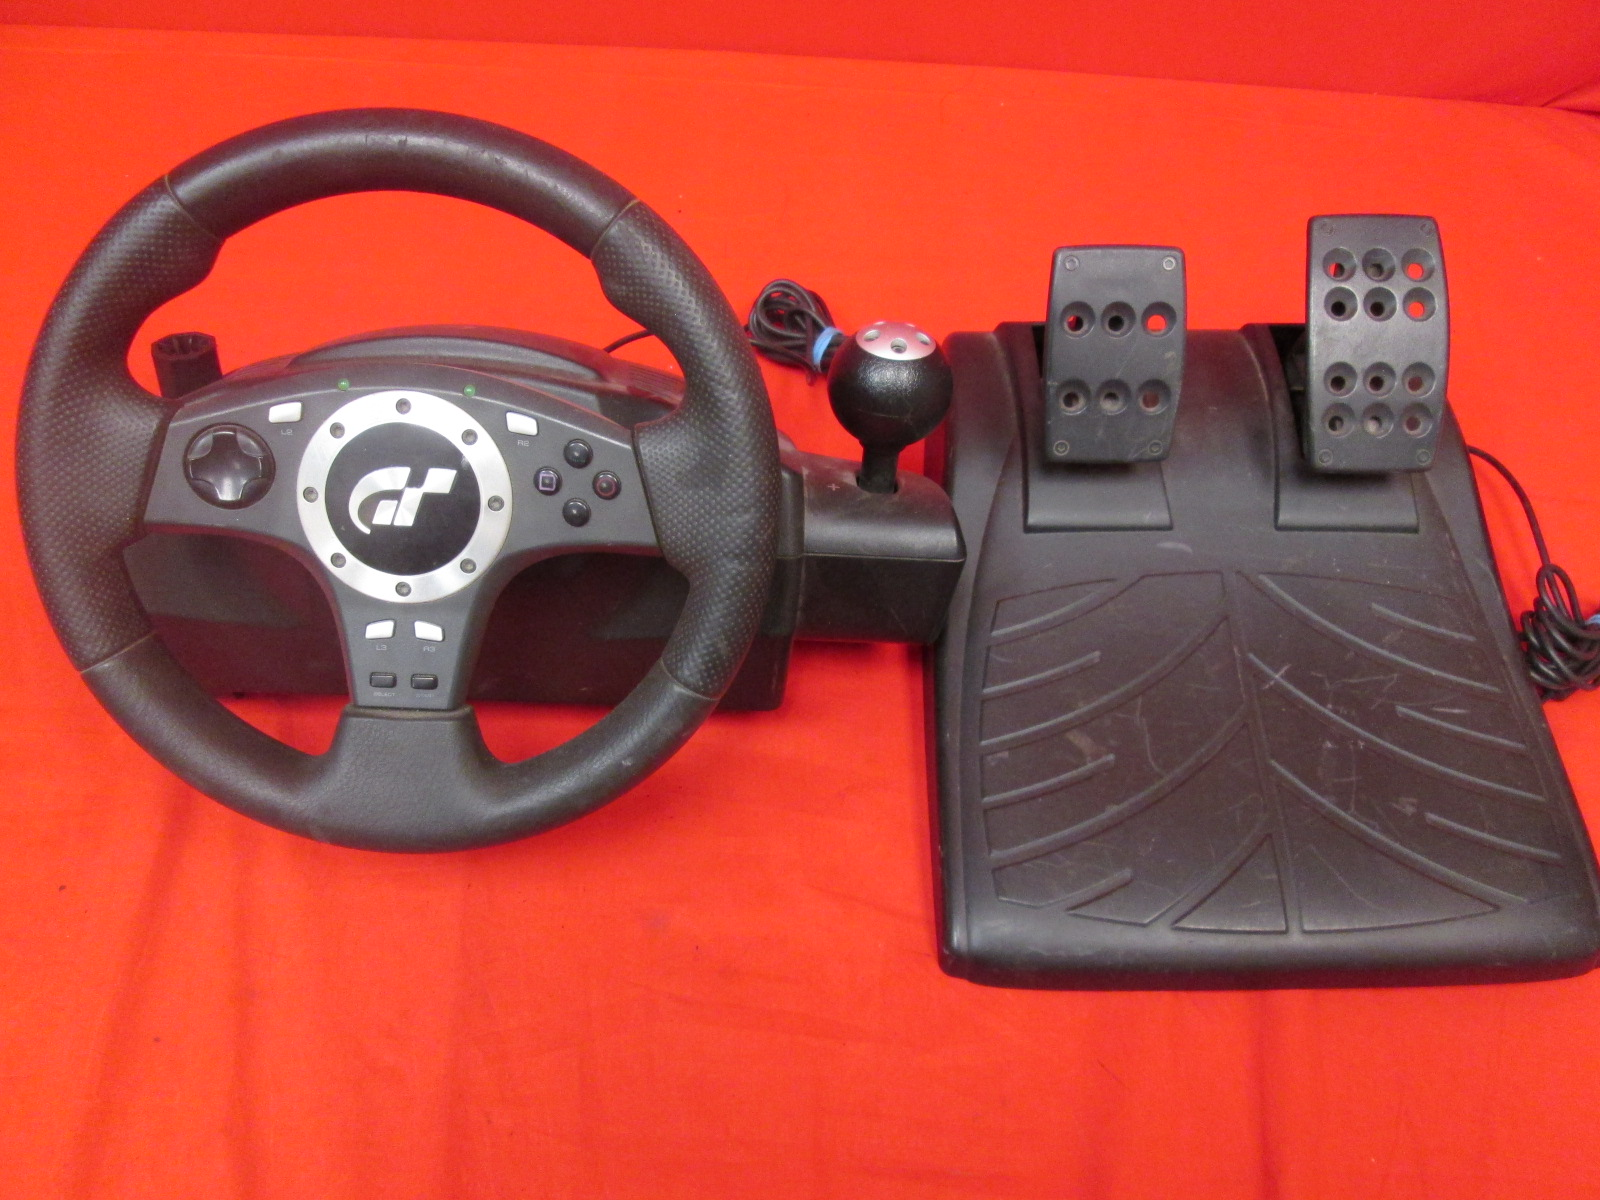 Broken Logitech E-UJJ11 Driving Force Wheel And Pedals Set